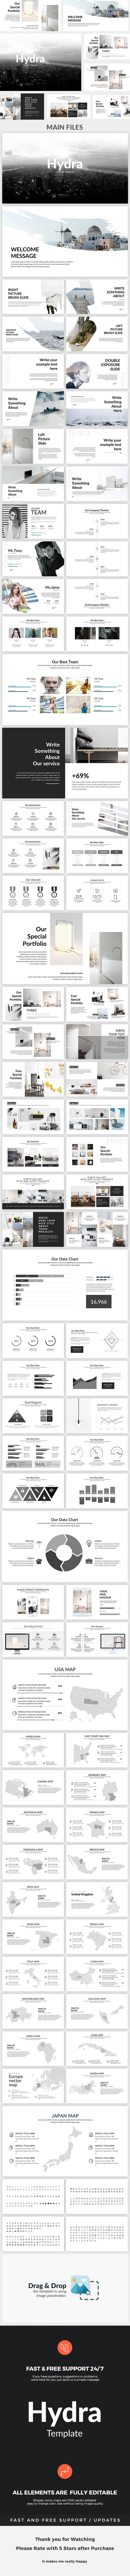 Hydra - Creative Powerpoint Template